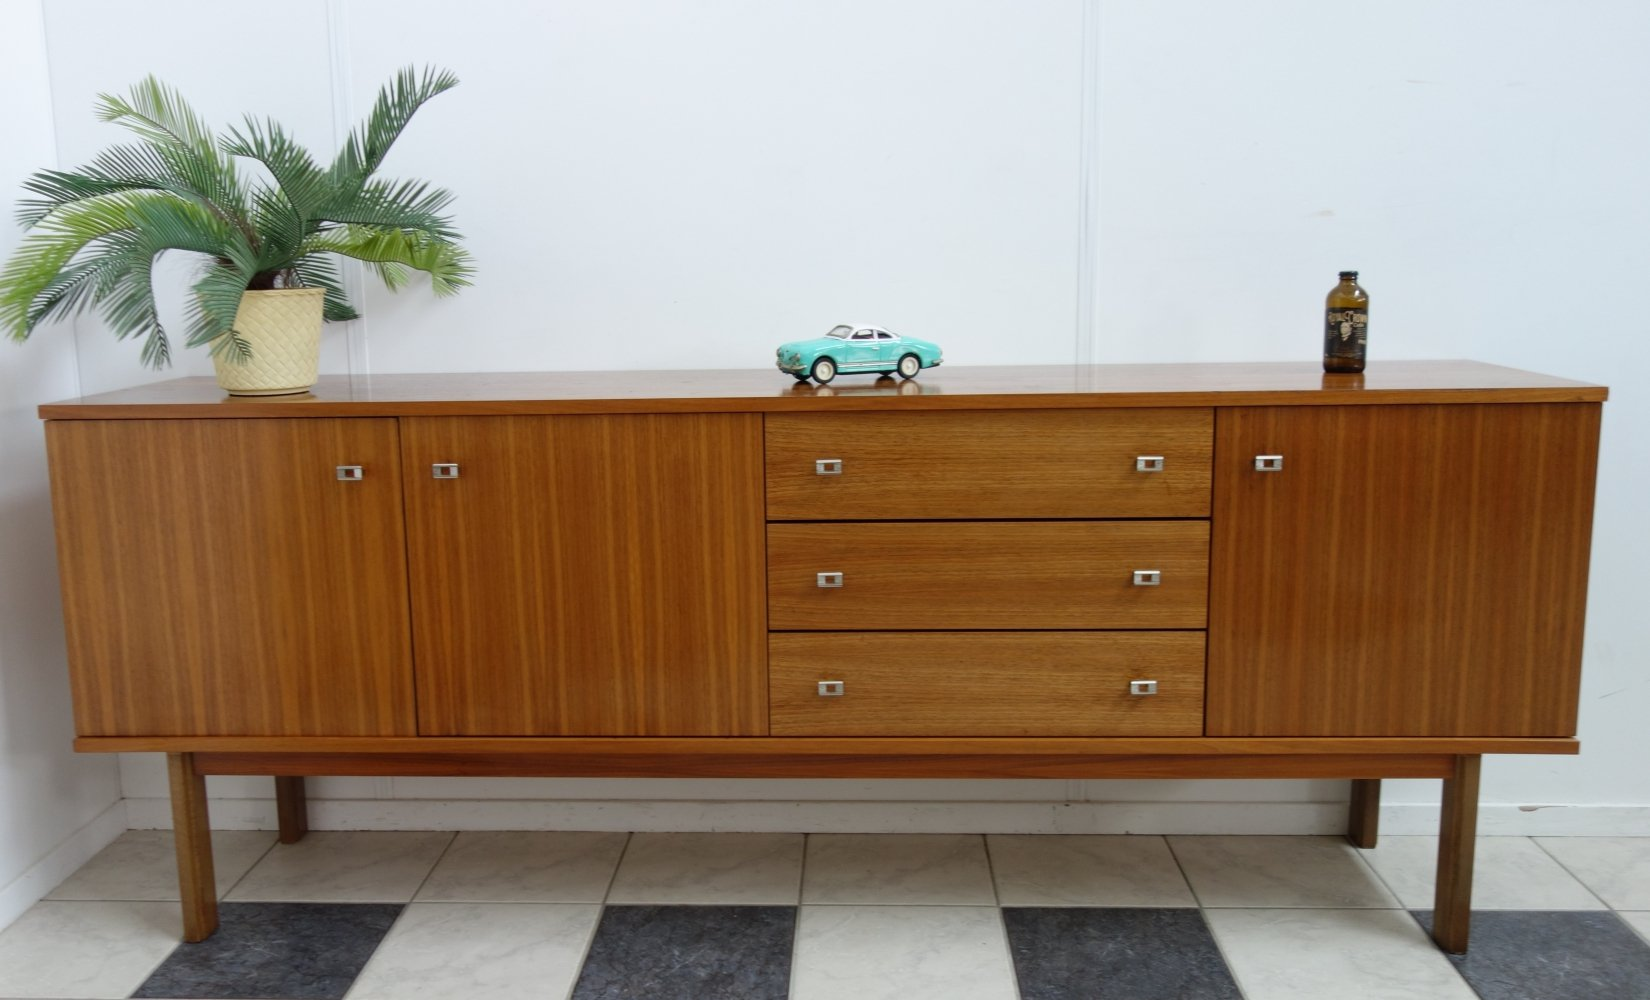 Large sideboard, 1960s